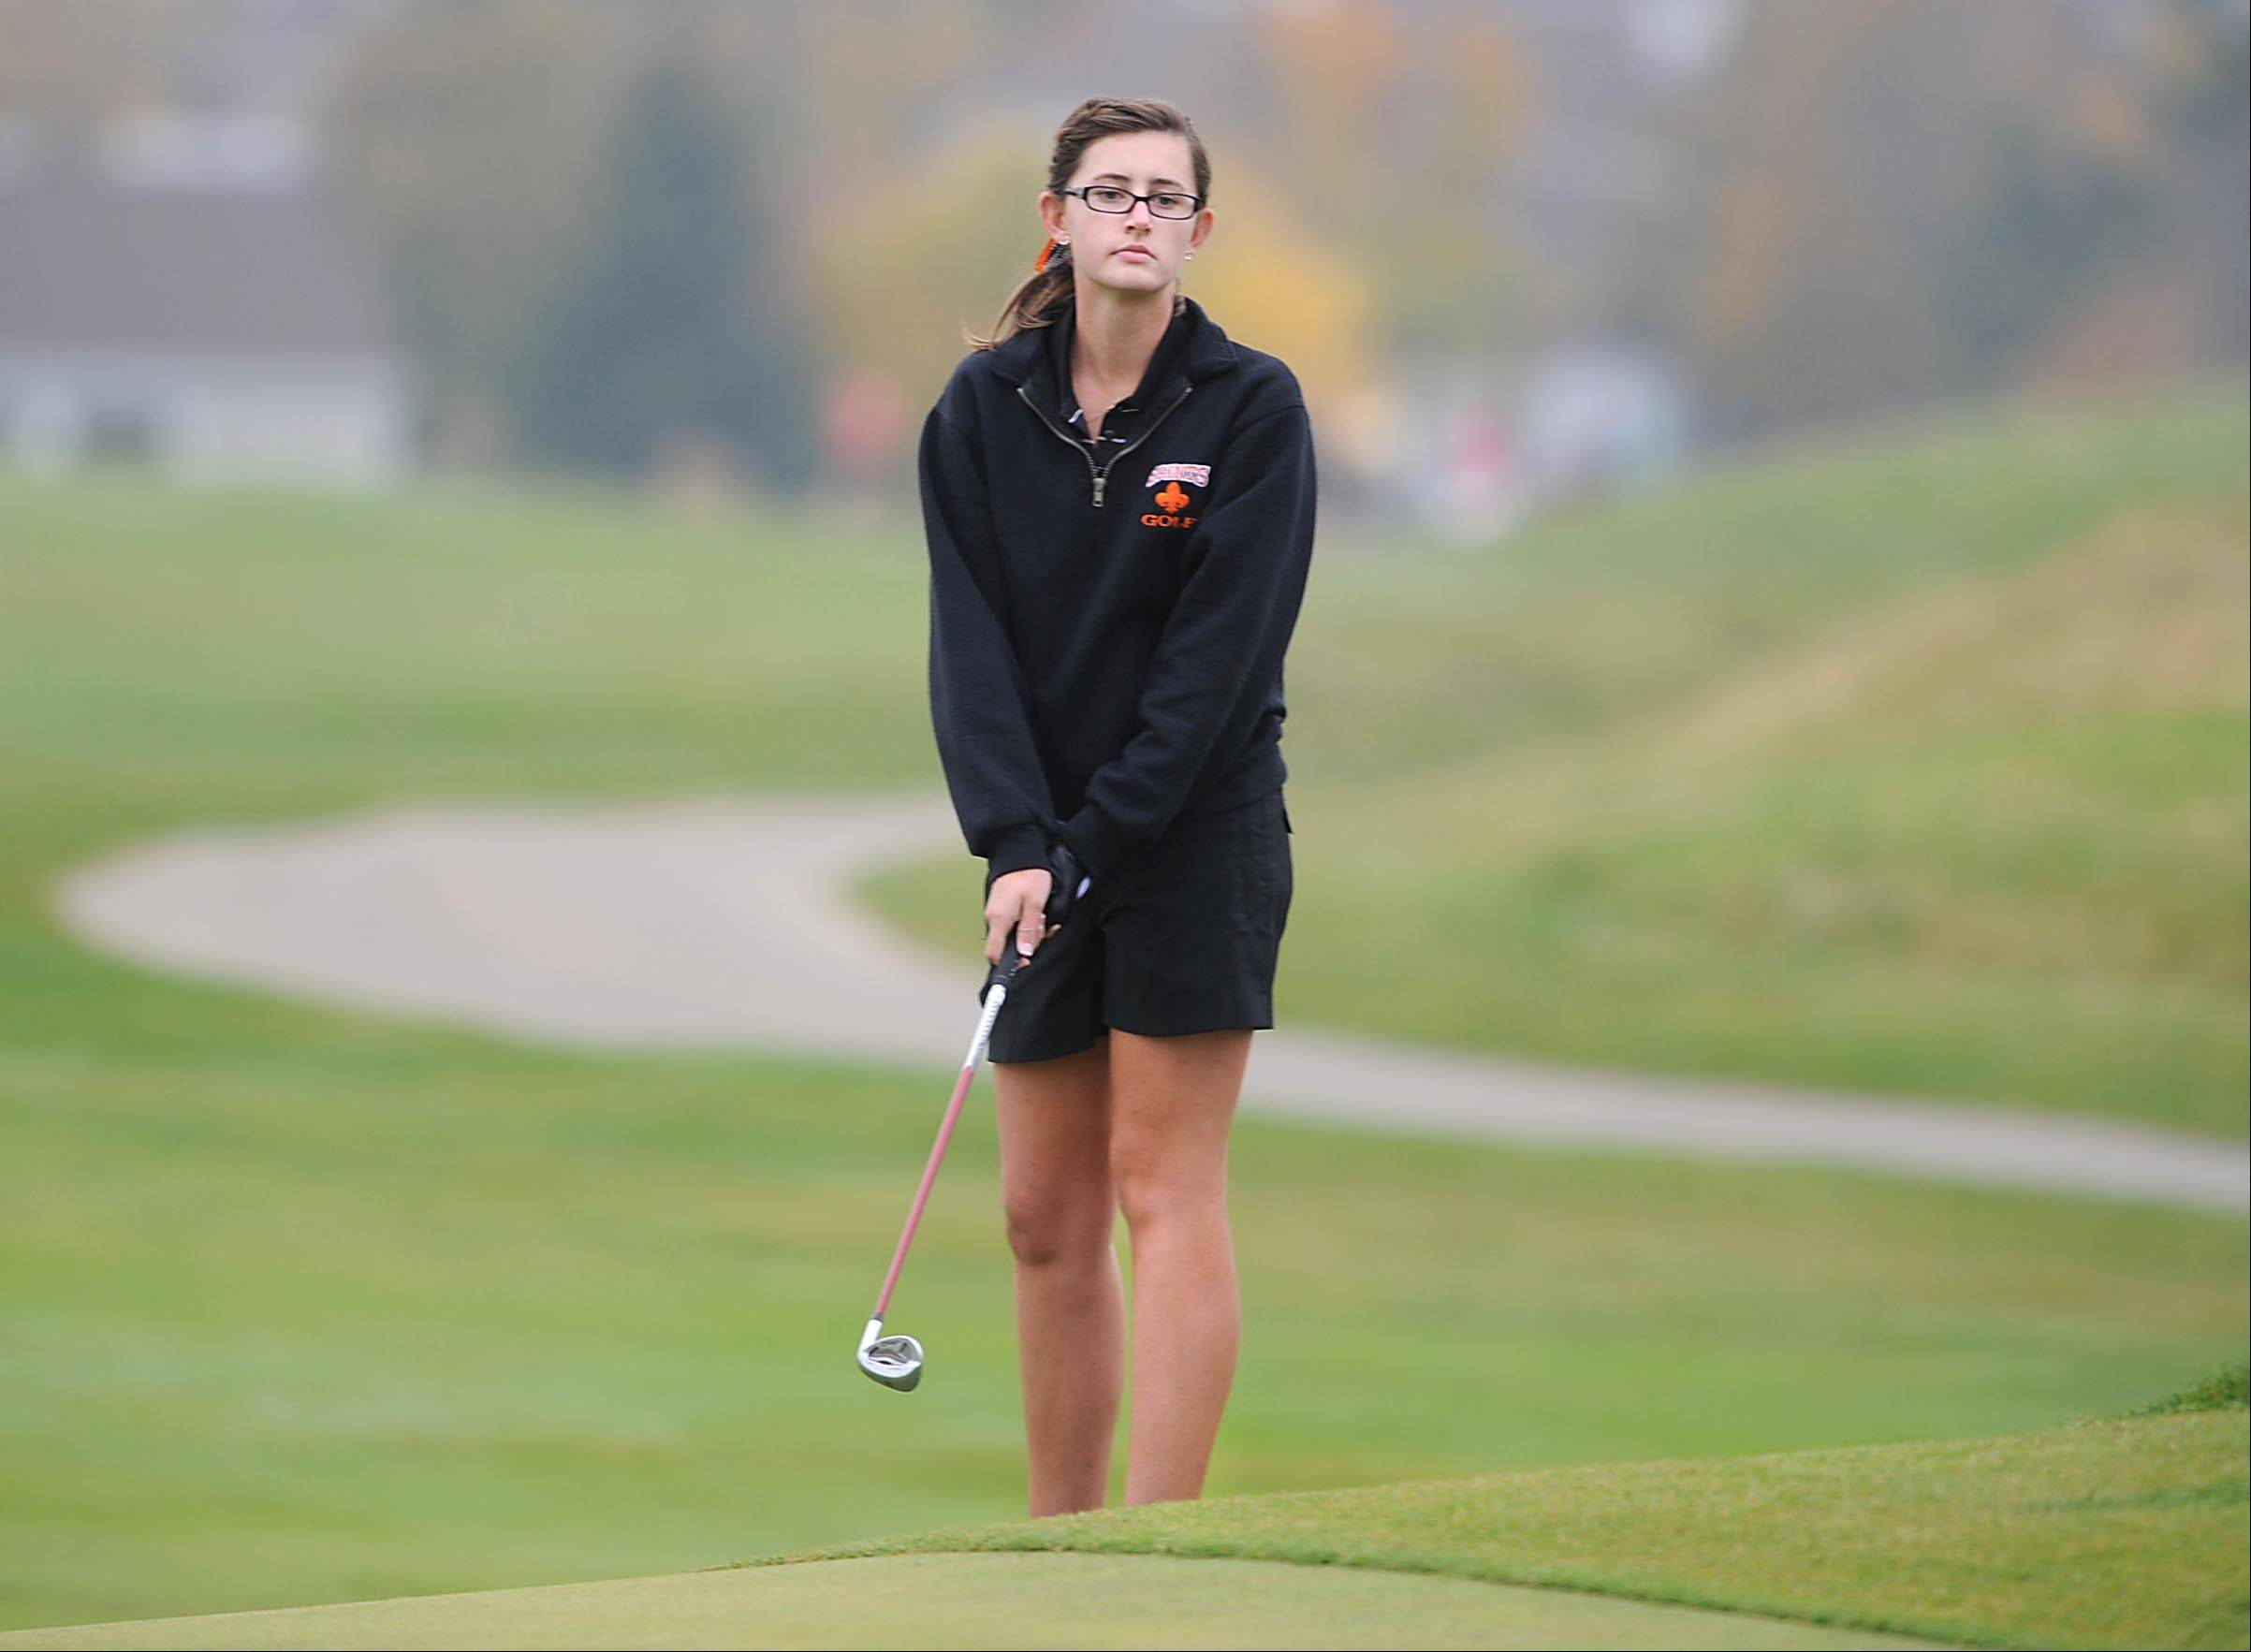 St. Charles East's Darby Crane follows her chip at the Regional golf tournament Wednesday at the Golf Club of Illinois in Algonquin.